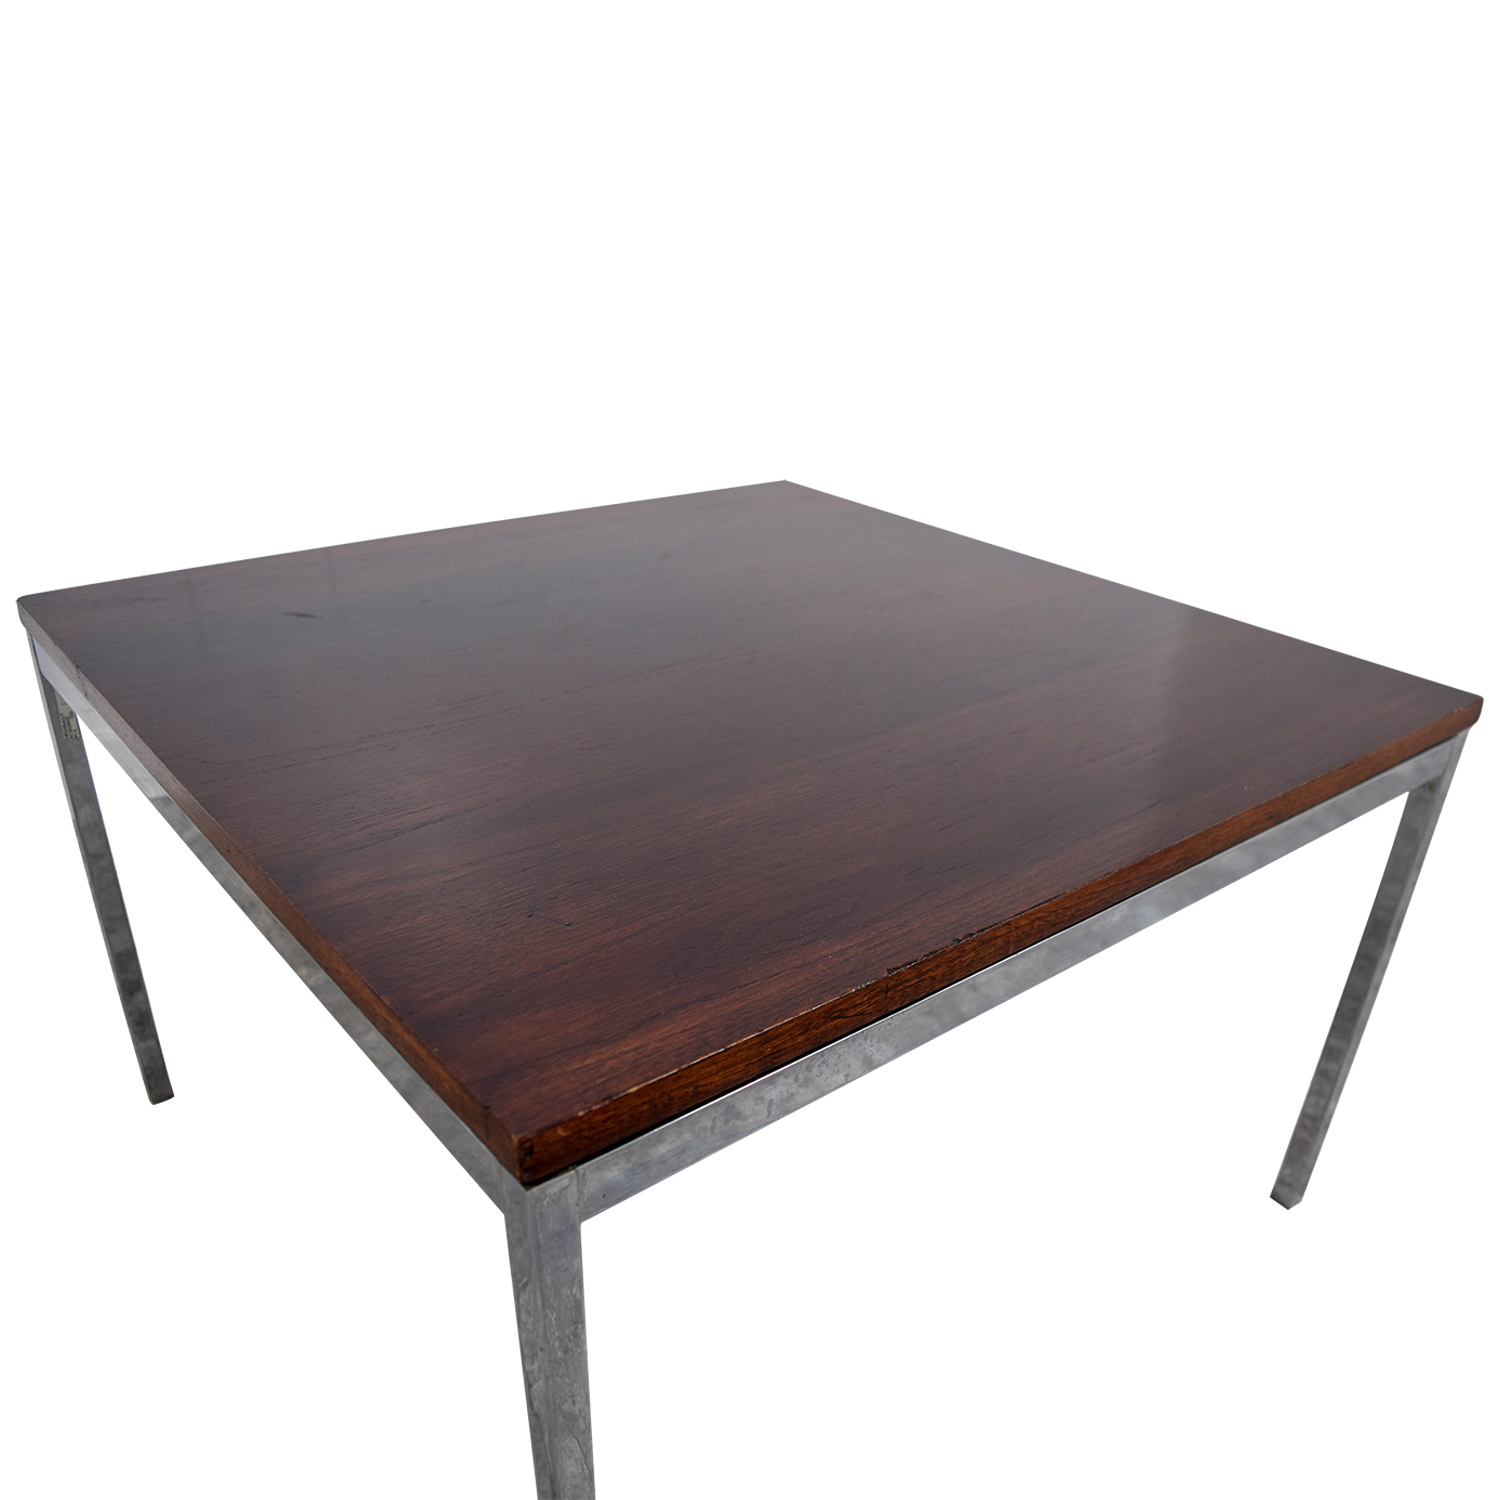 ... Buy Florence Knoll Rosewood And Chrome Coffee Table Florence Knoll  Tables ...